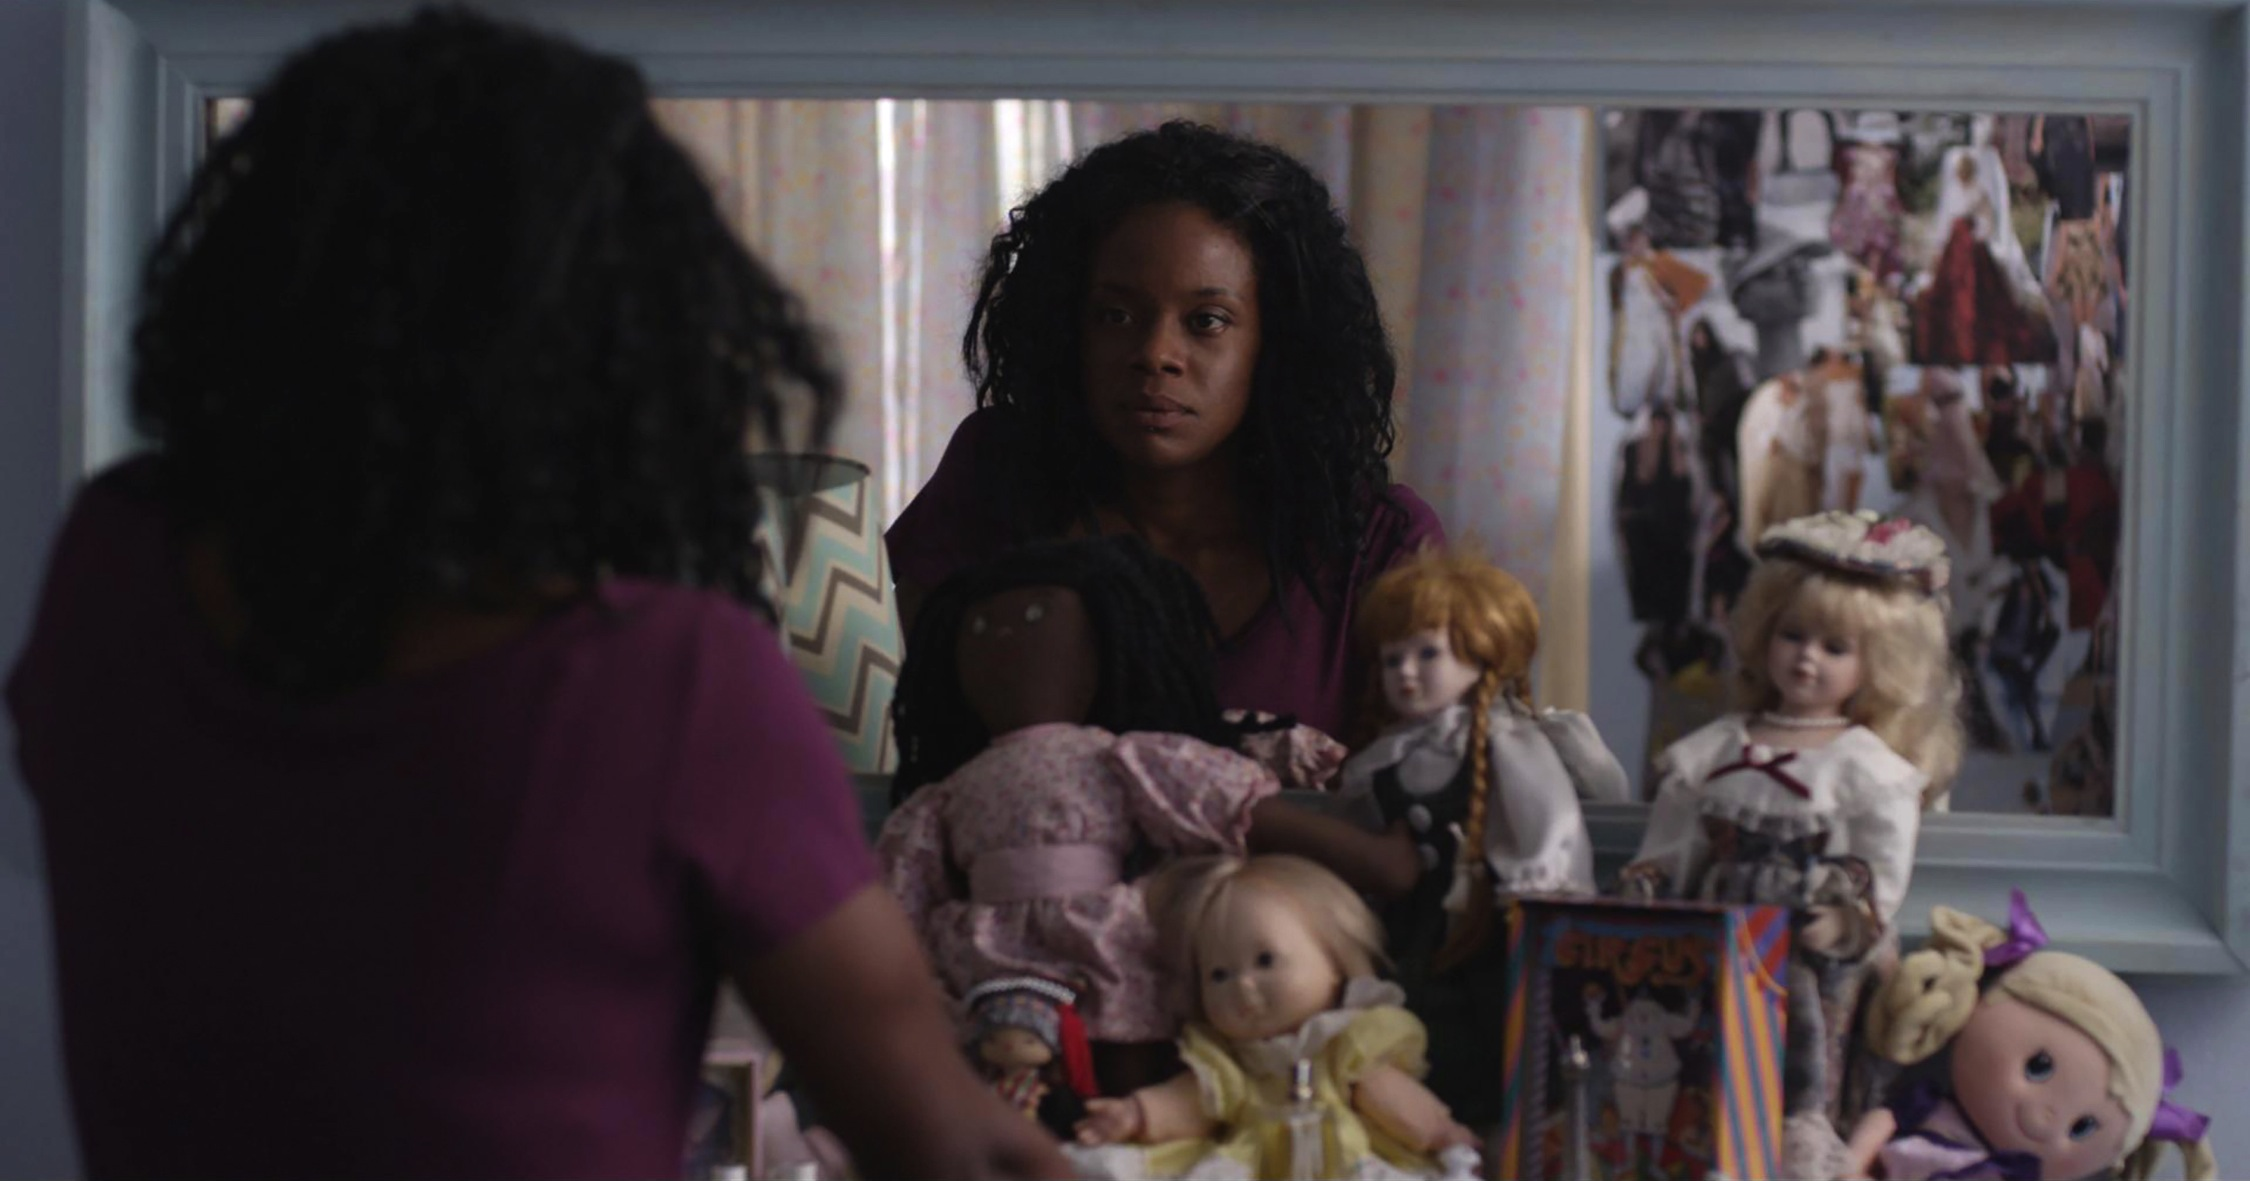 An Afro-Latina Fights Against Her Family's Colorism in This Puerto Rican Movie